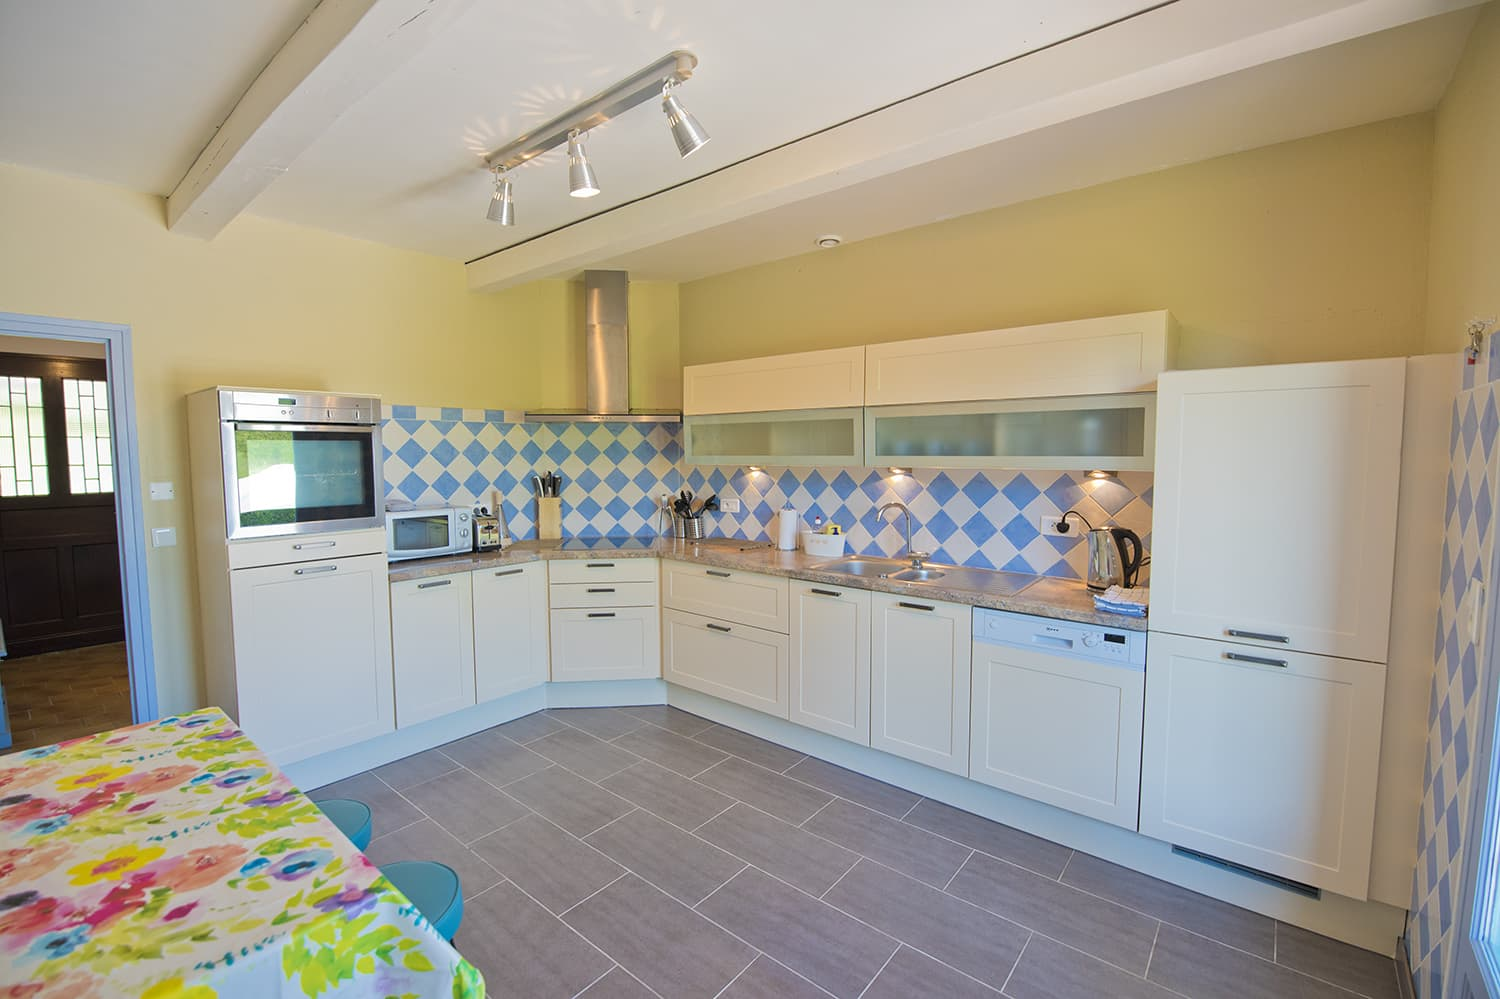 Kitchen in Dordogne self-catering home